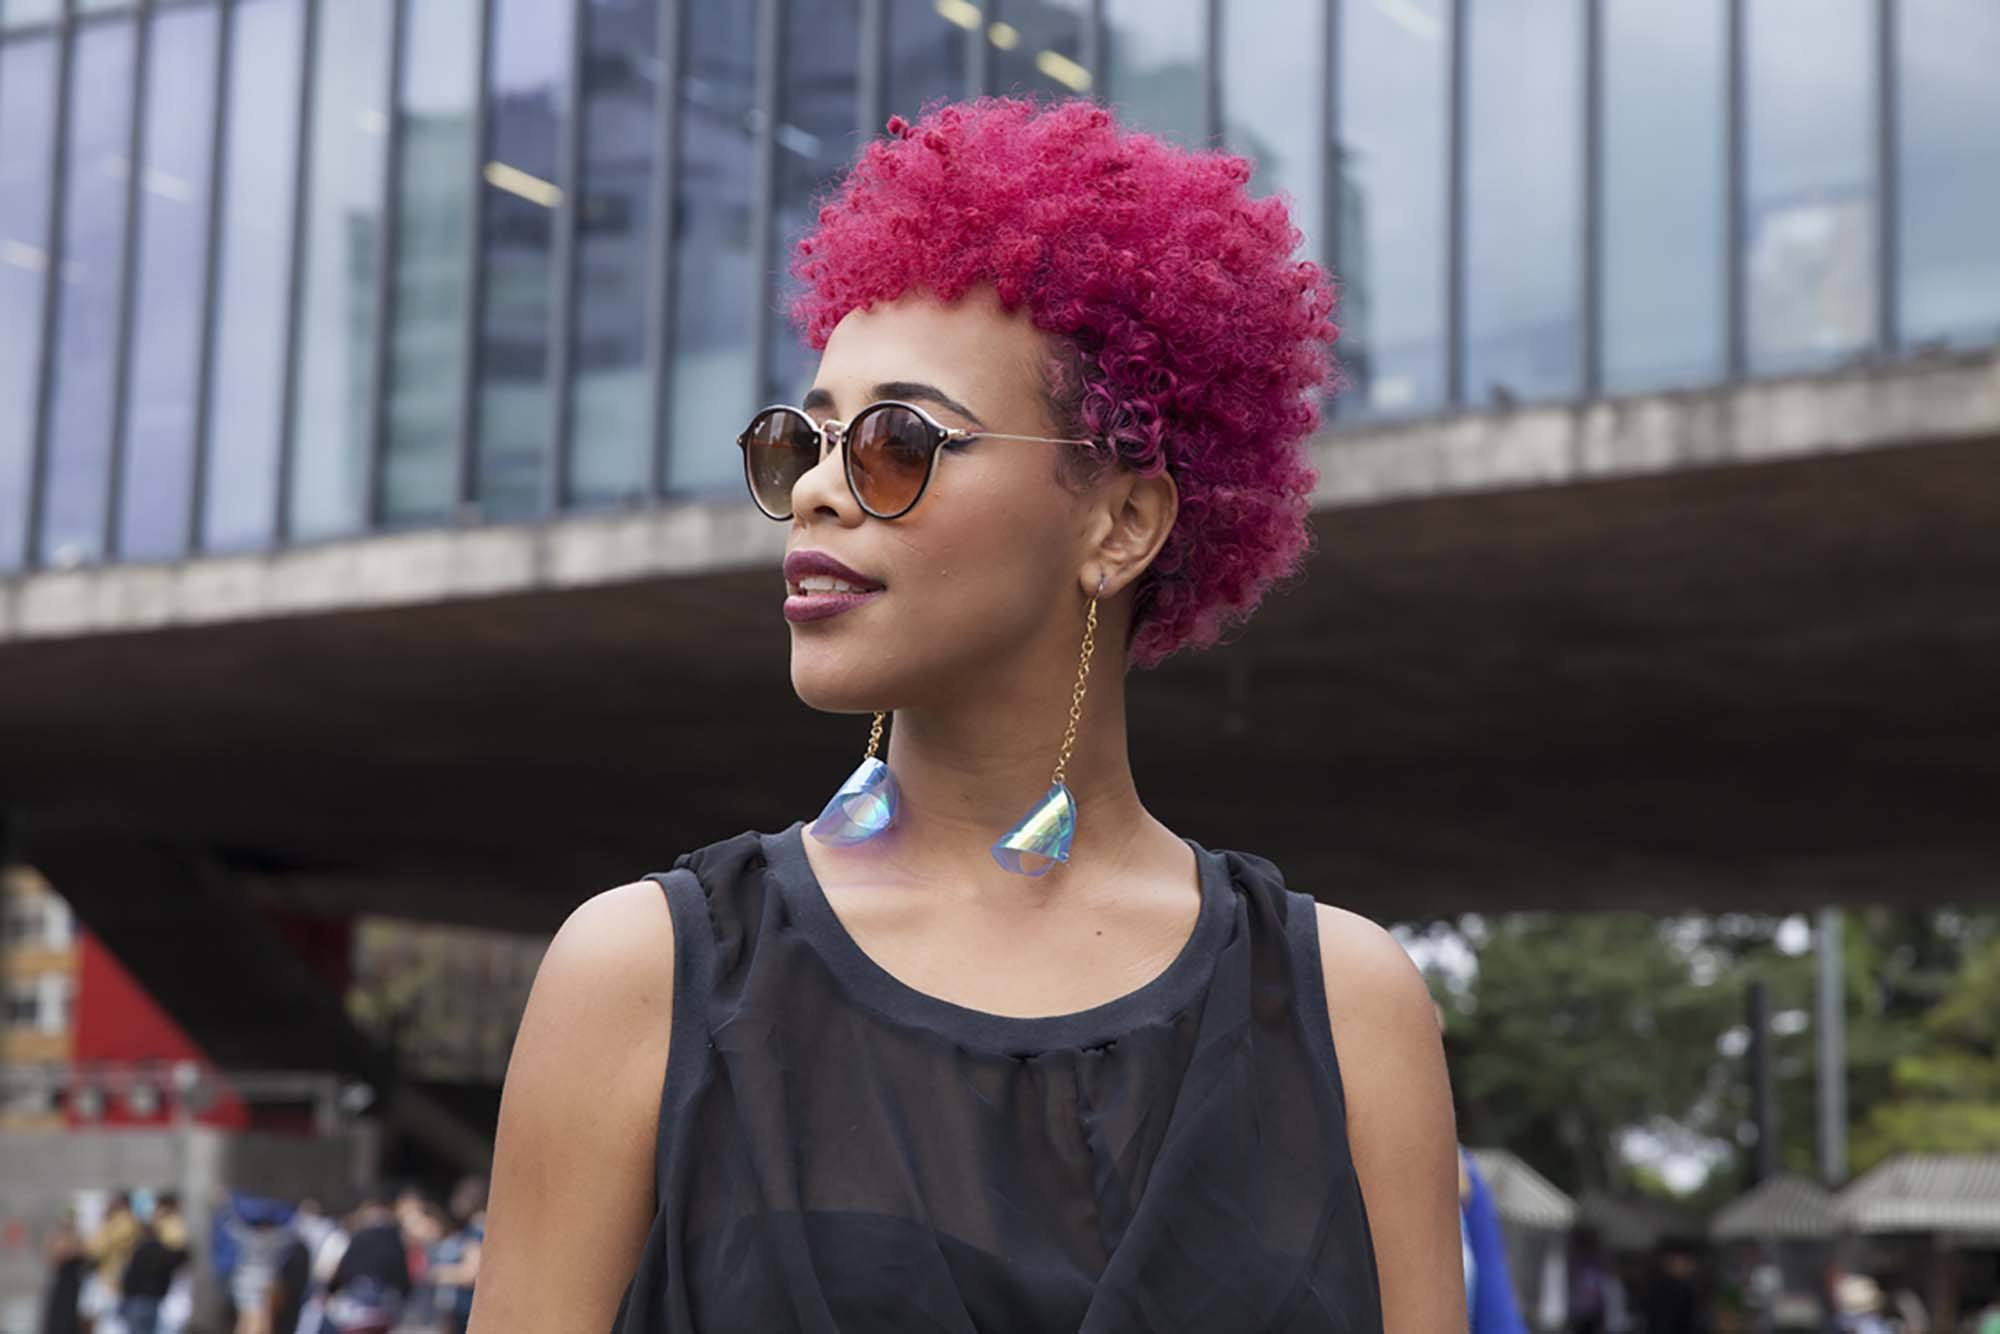 Pinks Hairstyles: 15 Of The Best Short Haircuts To Check Out Now